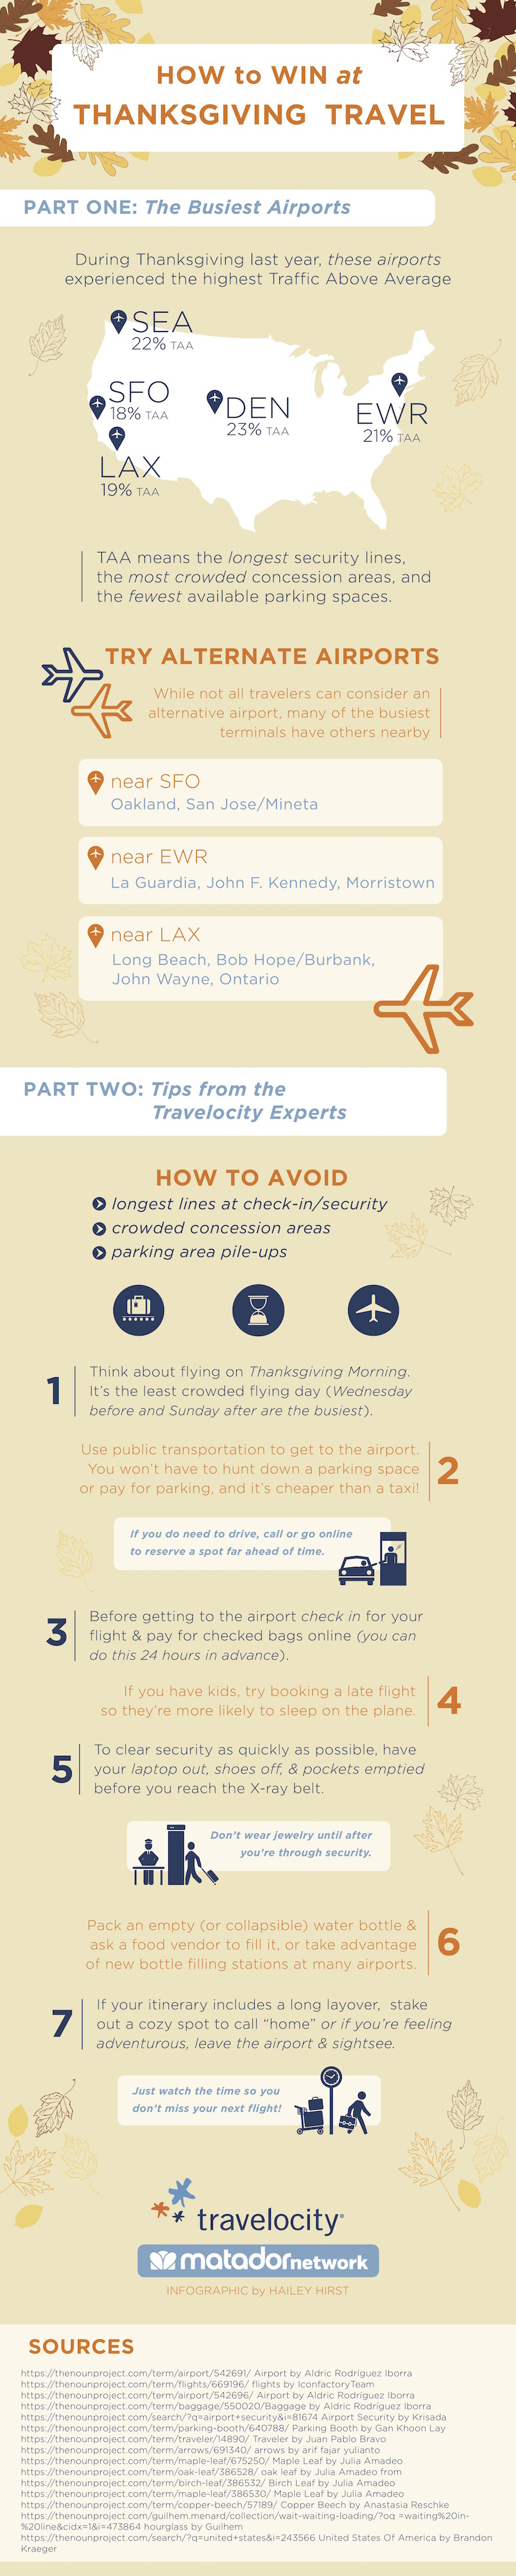 How to Win at Thanksgiving Travel